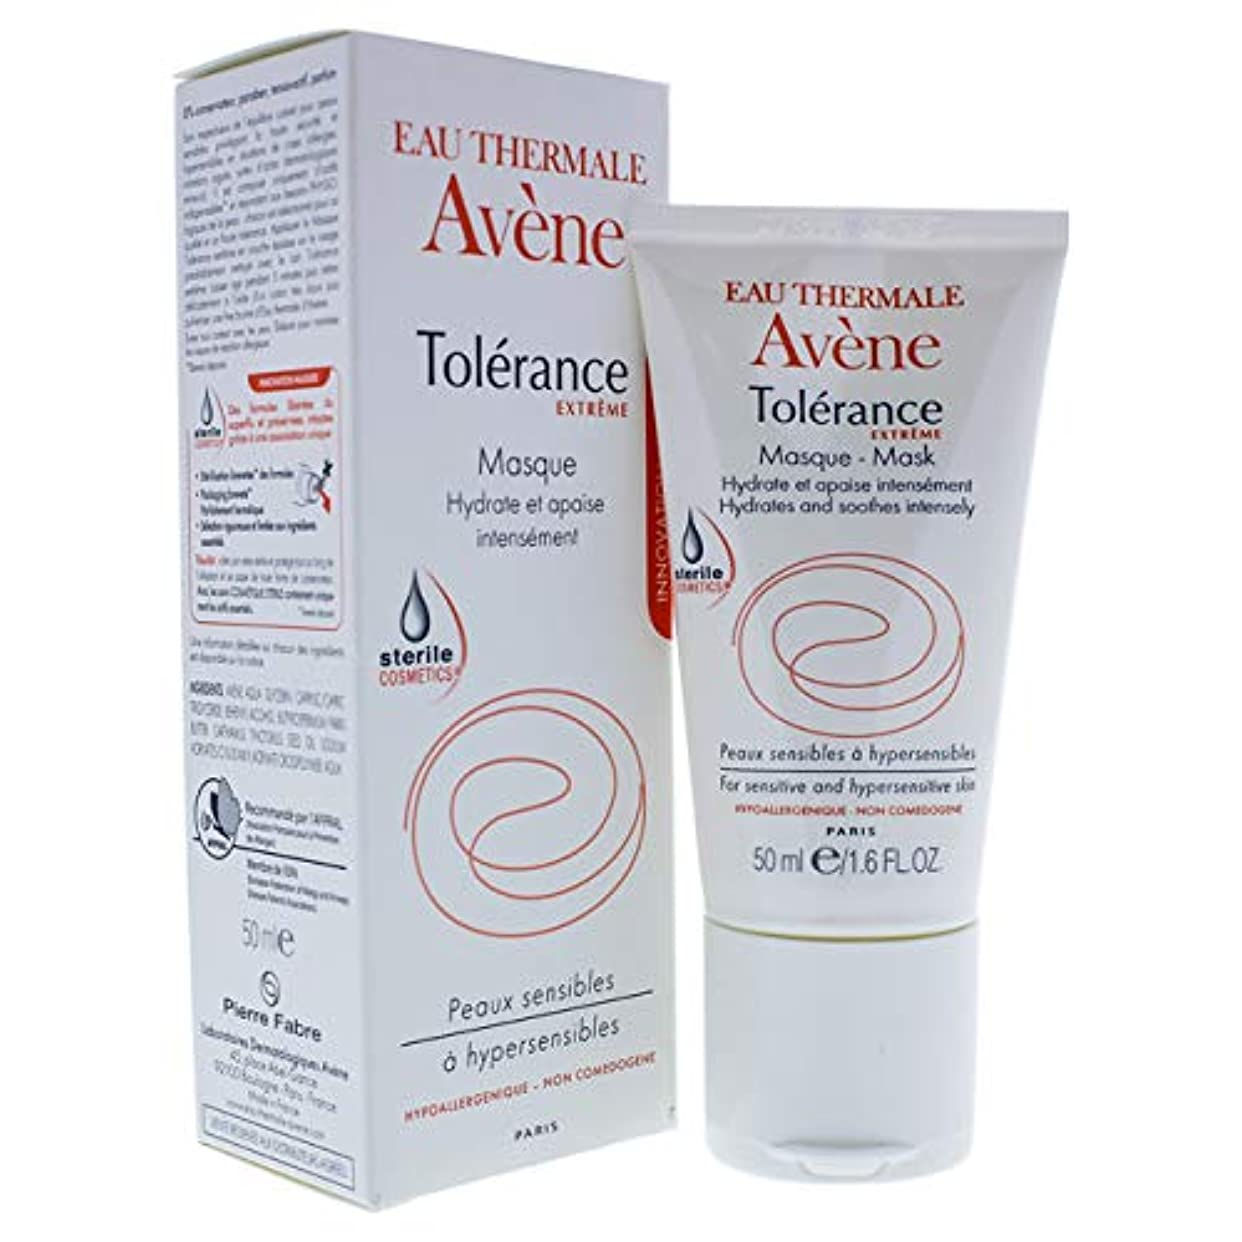 パール希少性タイムリーなアベンヌ Tolerance Extreme Mask - For Sensitive & Hypersensitive Skin 50ml/1.6oz並行輸入品